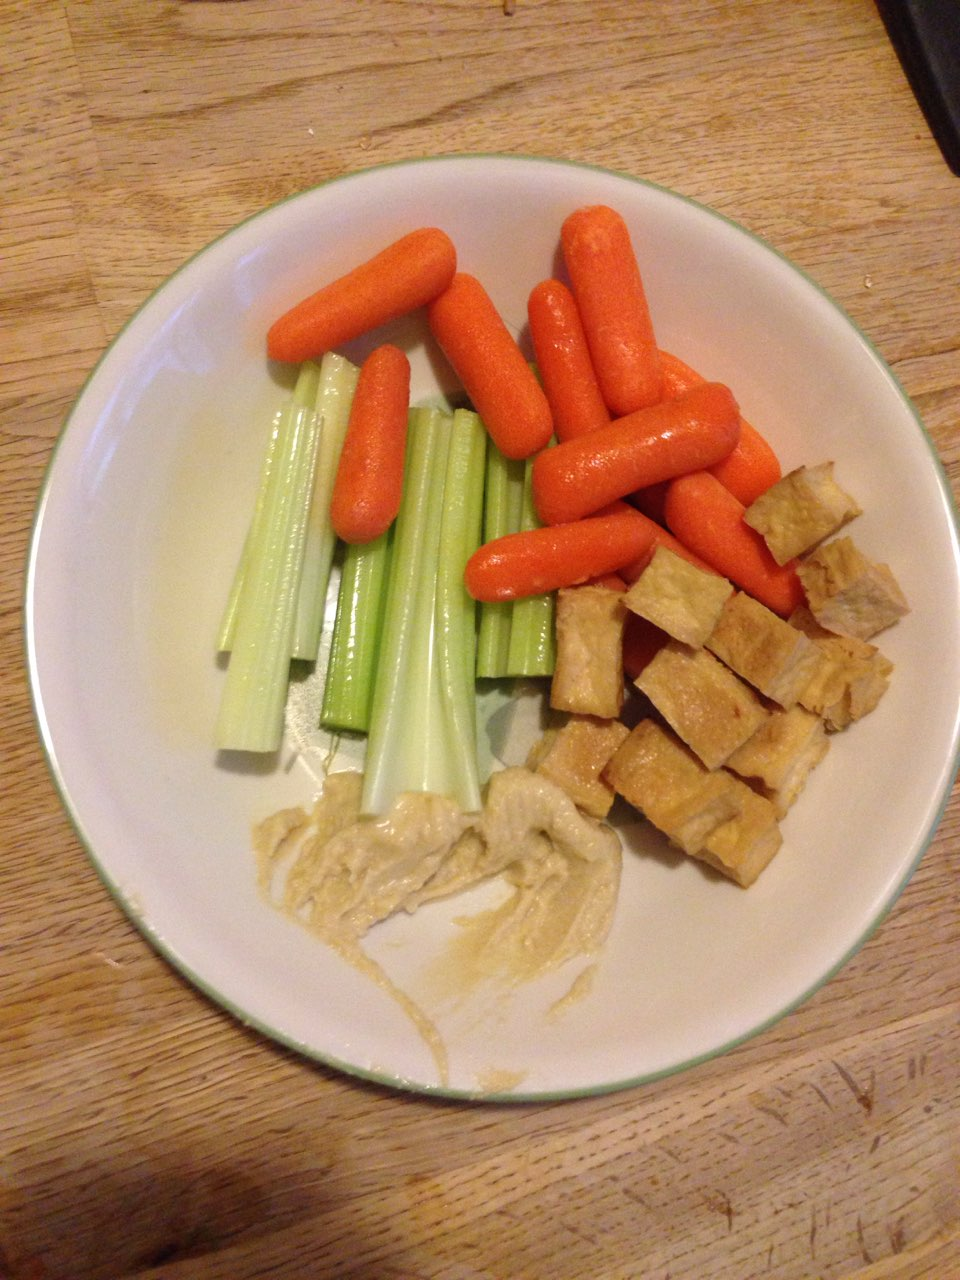 Yummy AND filling snack for less than 160 calories! Celery <15 cals,  carrots ~25 cals, 2 Tbsp Hummus 34 cals, and 1 serving of cubed tofu 80  cals.